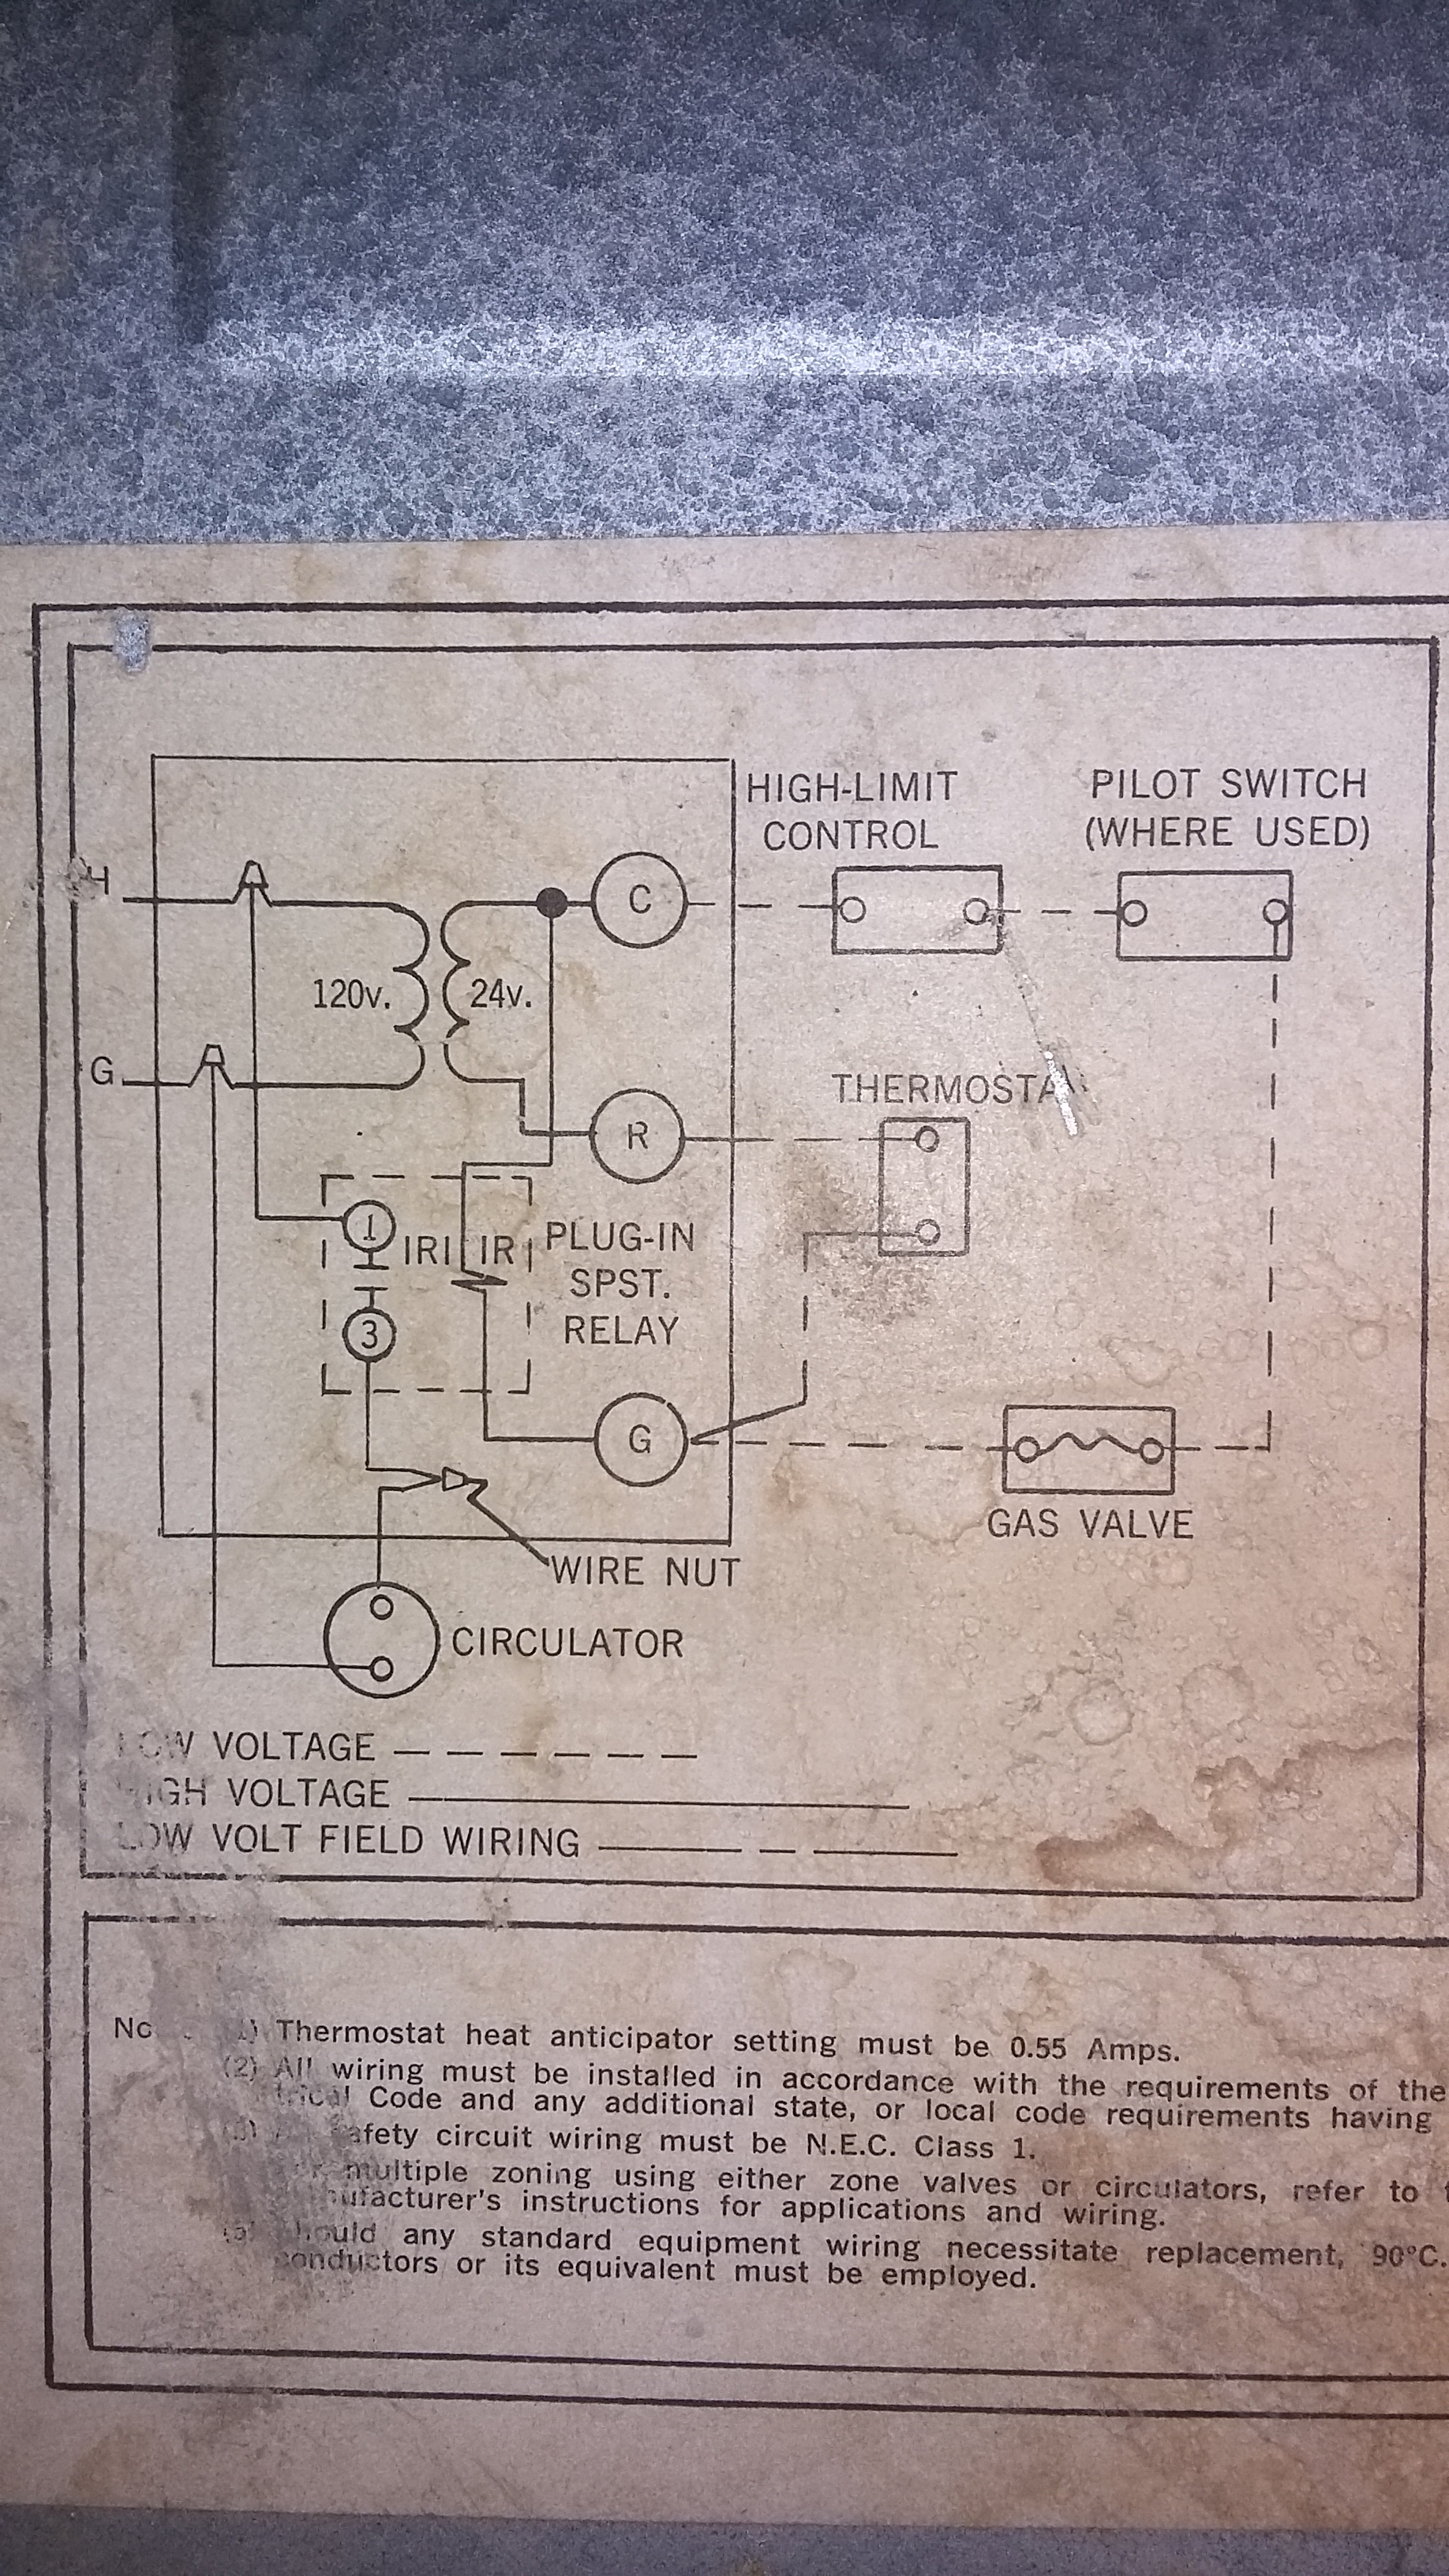 Taco zvc4044 4 zone limit and gas hook up Heating Help The Wall – L8148e1265 Aquastat Relay Wiring Diagram